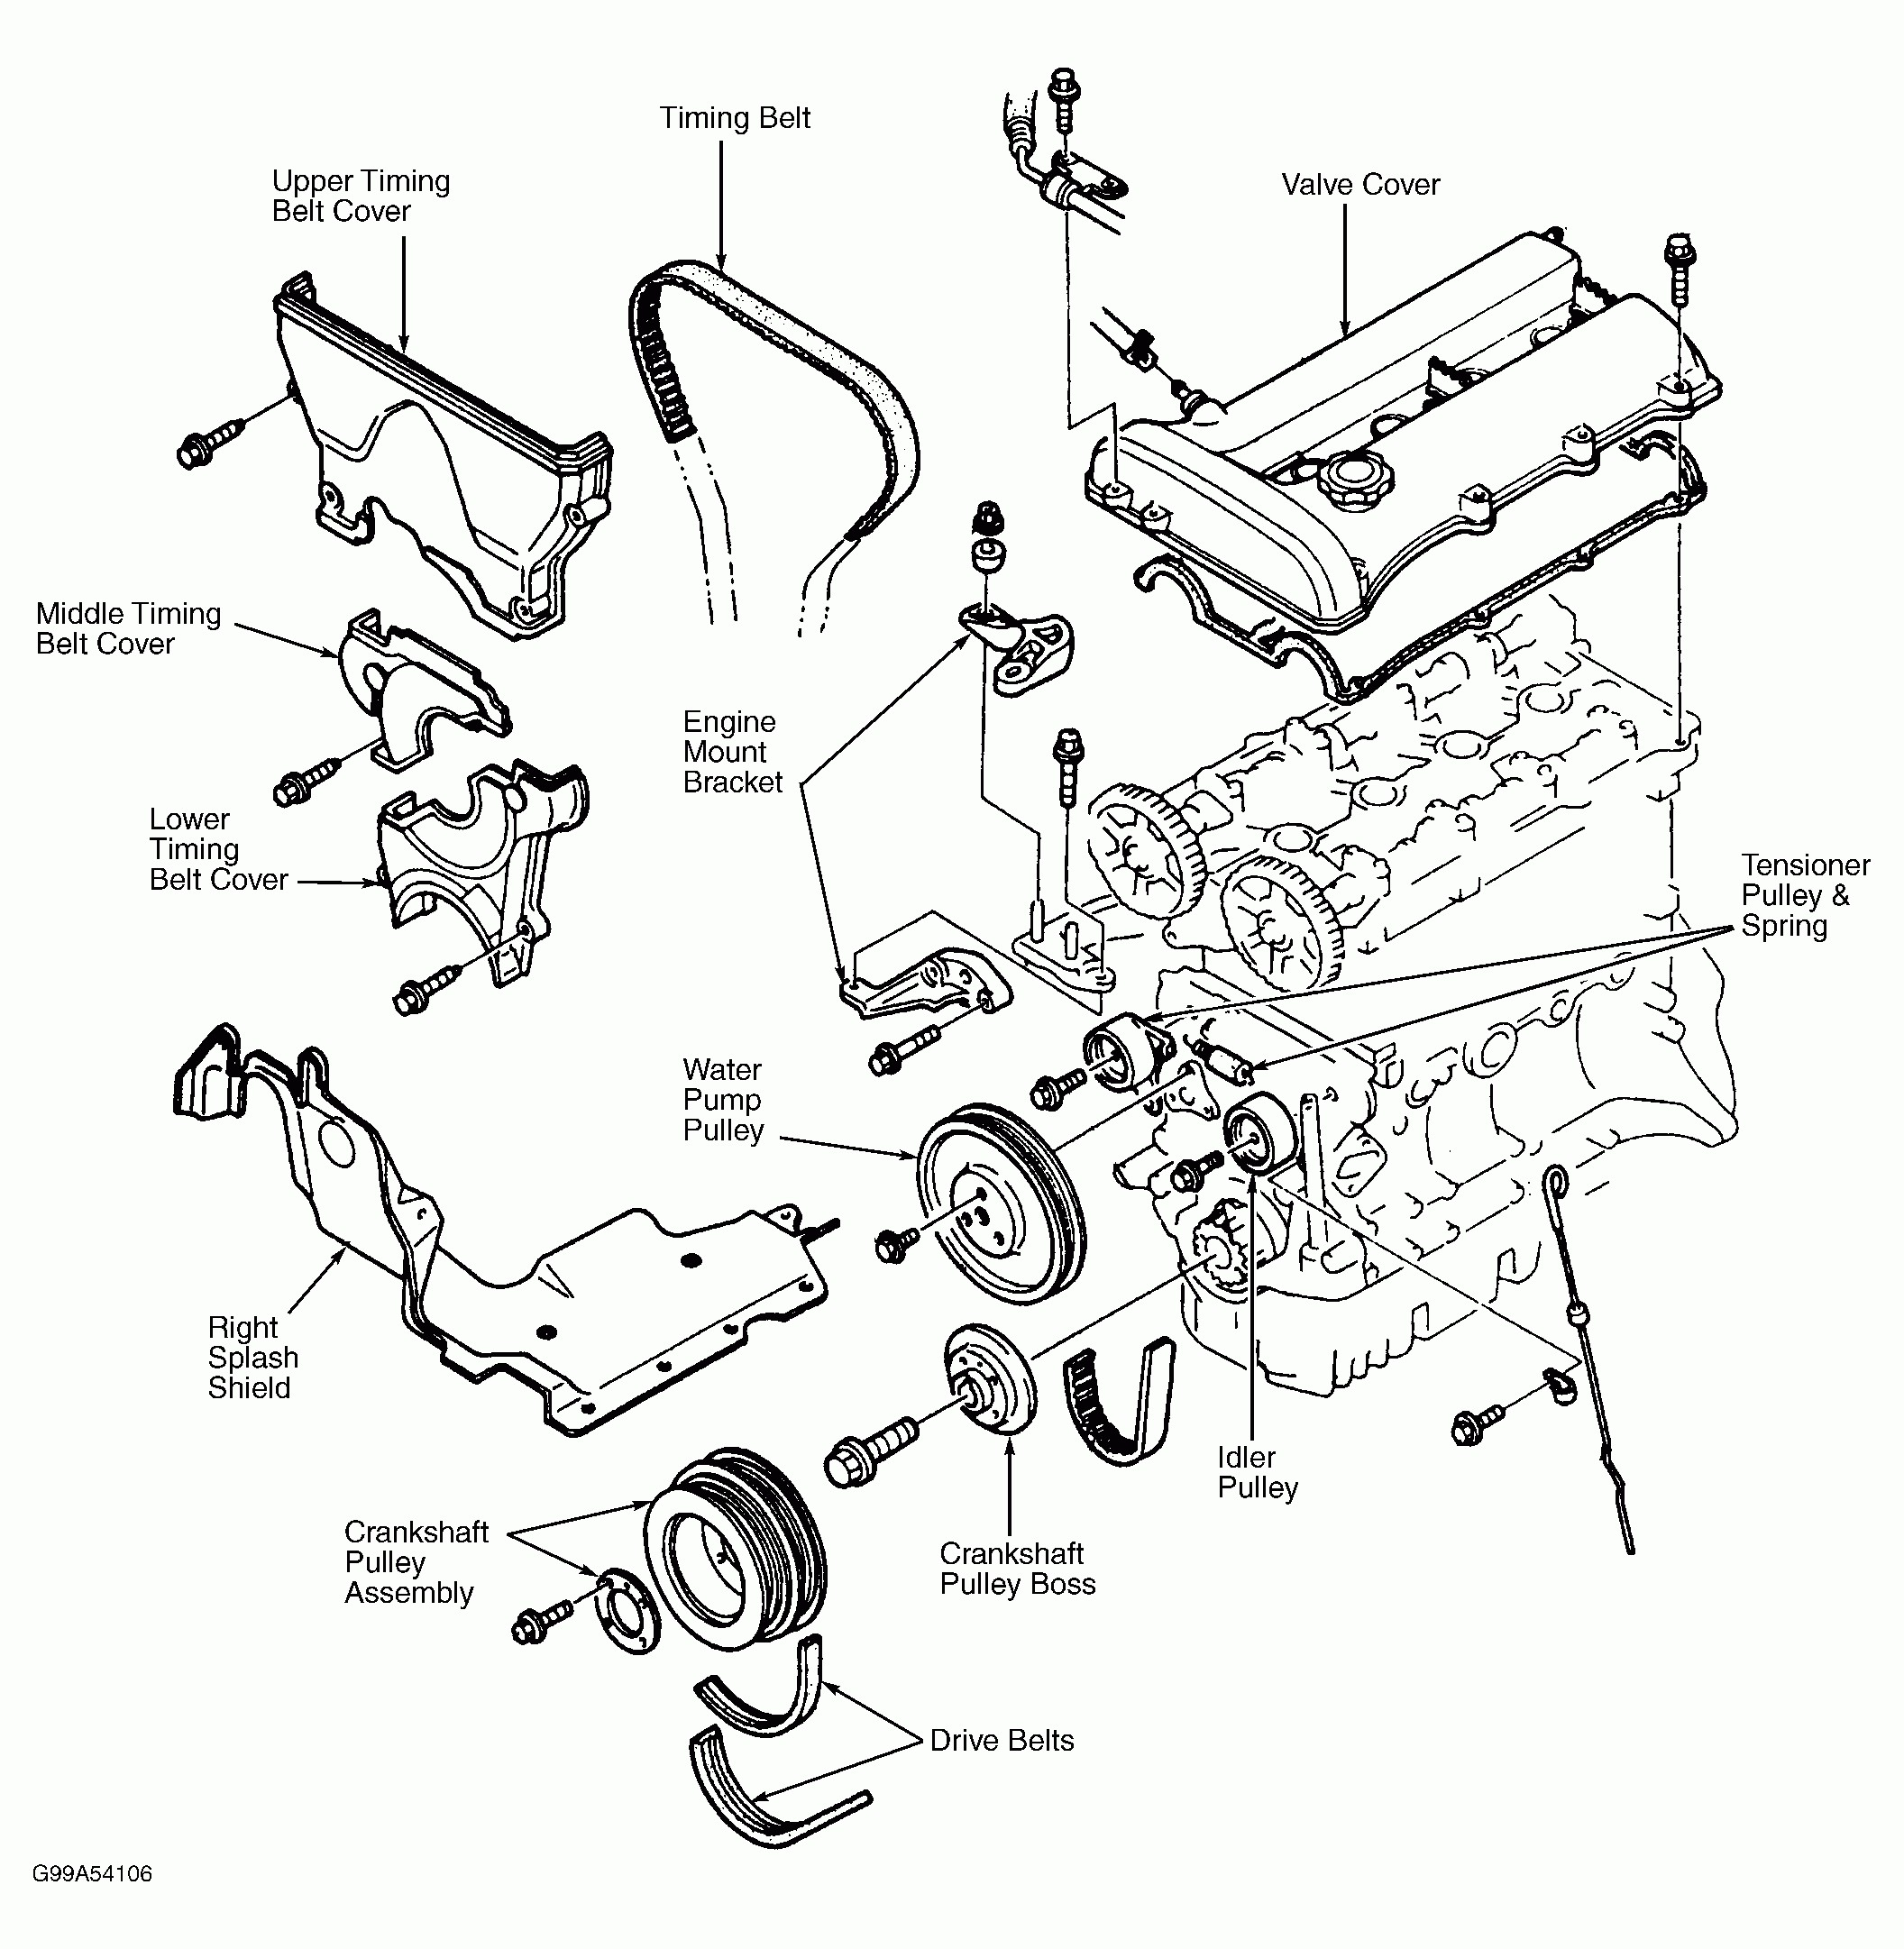 Mazda Protege Engine Diagram 2002 Mazda Protege Engine Diagram 1997 Mazda Protege Serpentine Belt Of Mazda Protege Engine Diagram 1989 Mazda 323 Wiring Diagram Wiring Diagrams